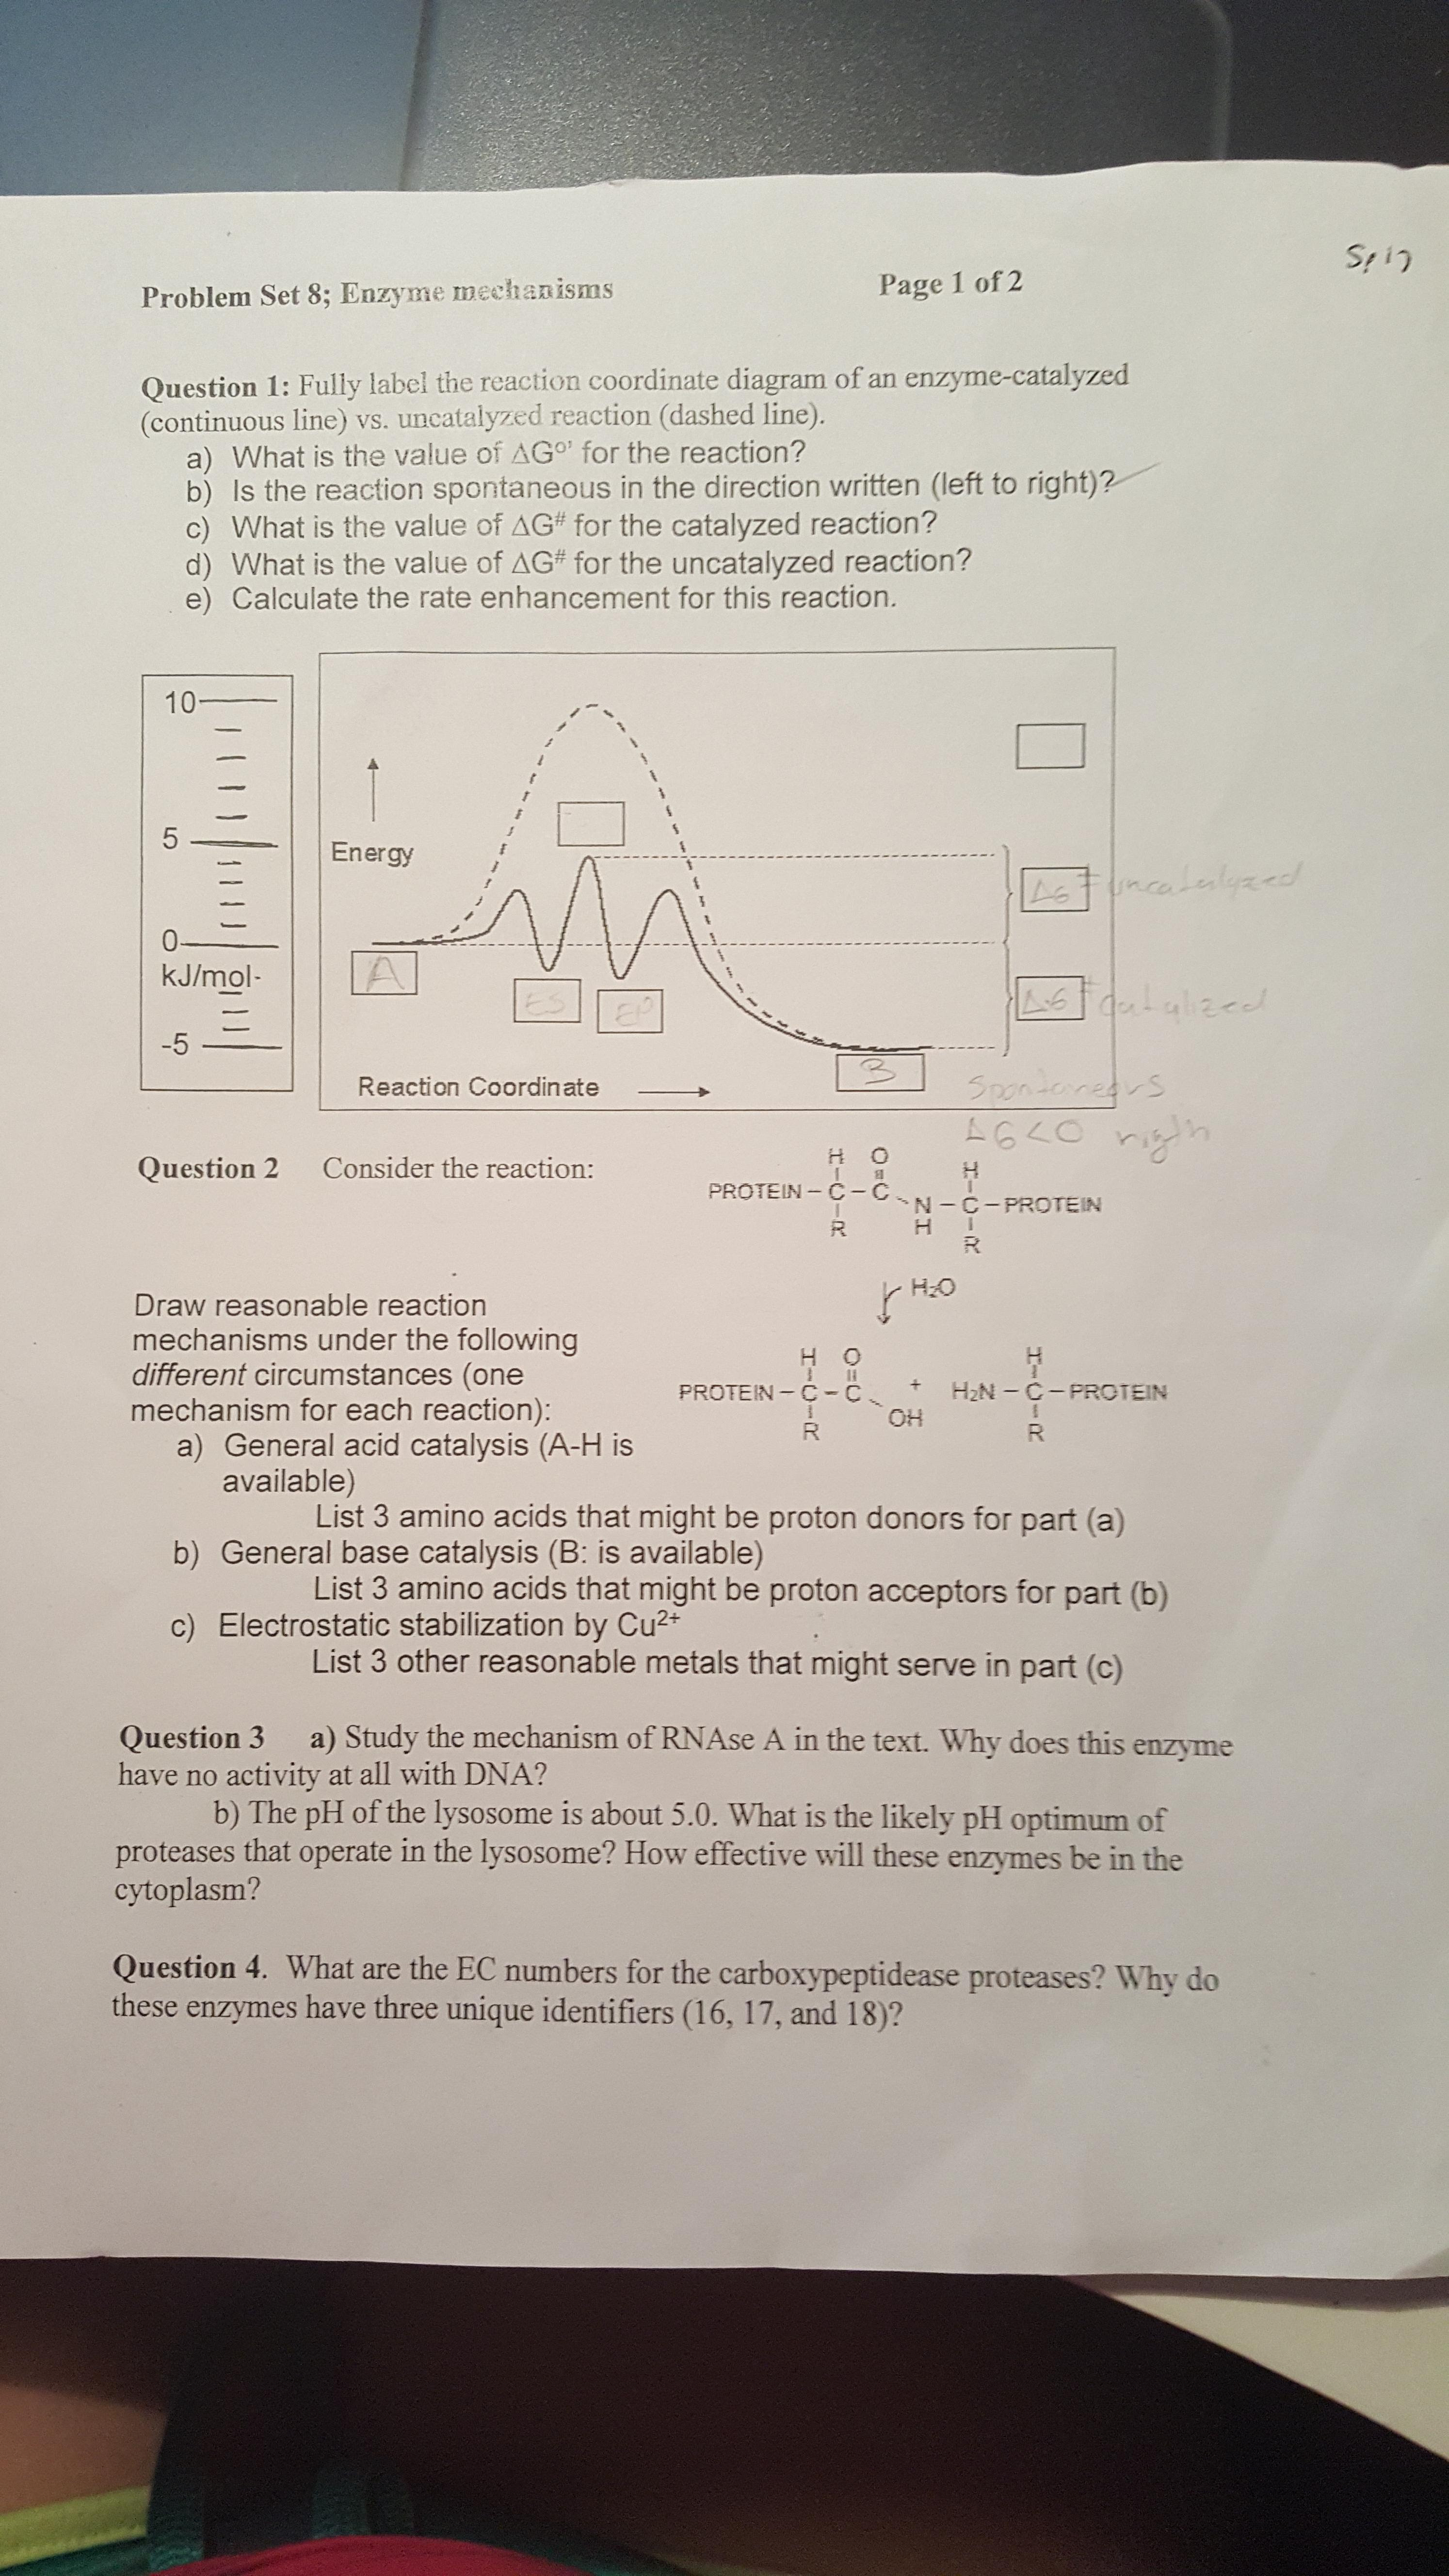 Solved: Fully Label The Reaction Coordinate Diagram Of An ...